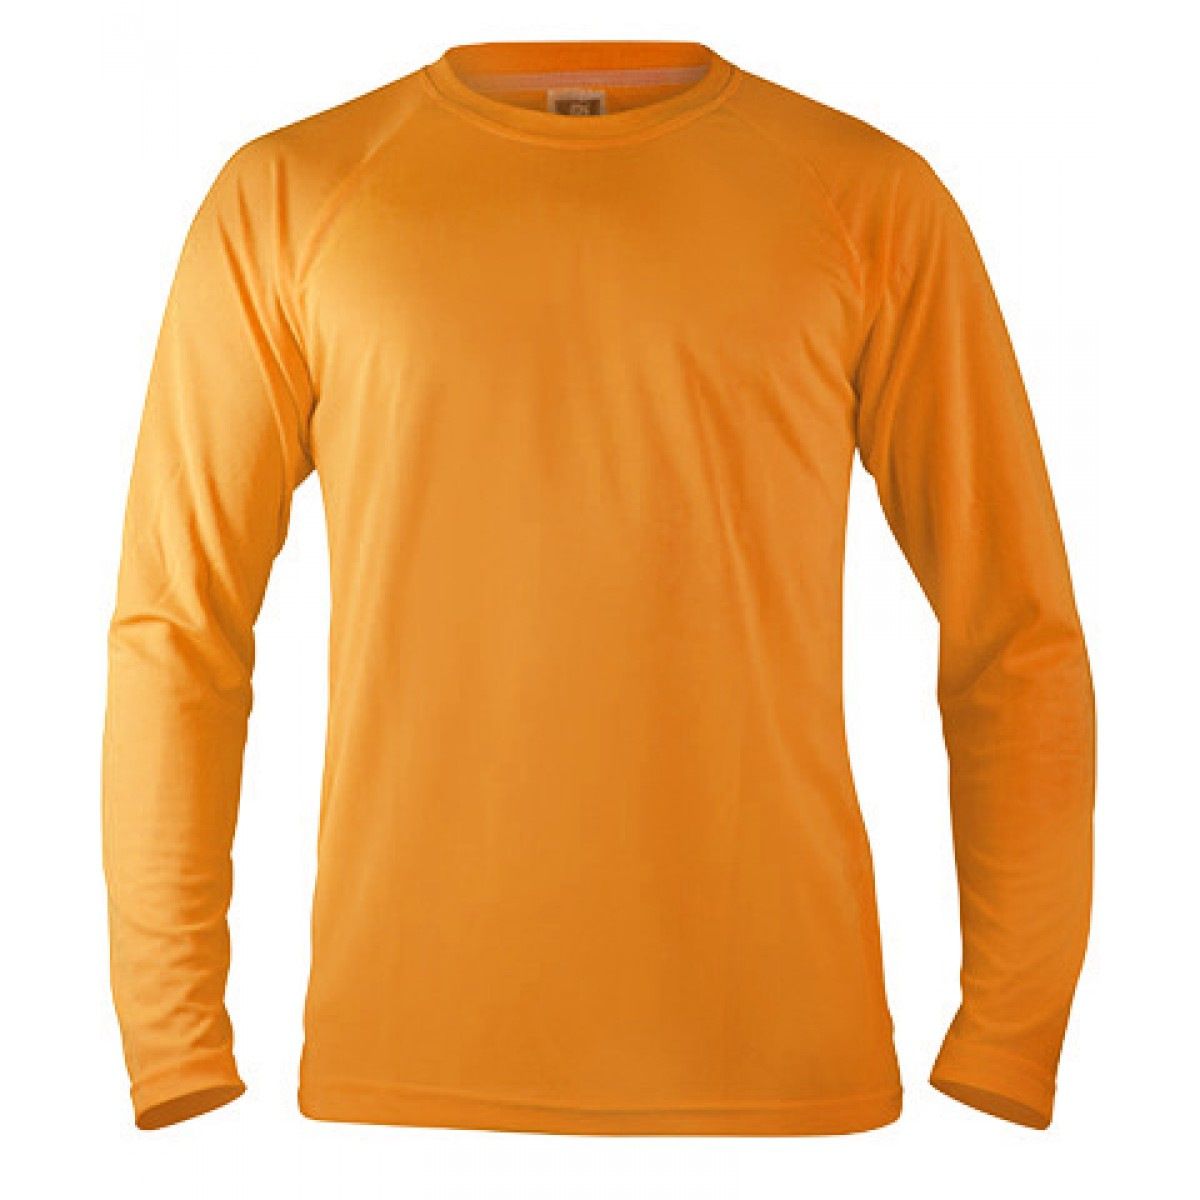 Long Sleeve Mesh Performance T-shirt-Neon Orange -XL